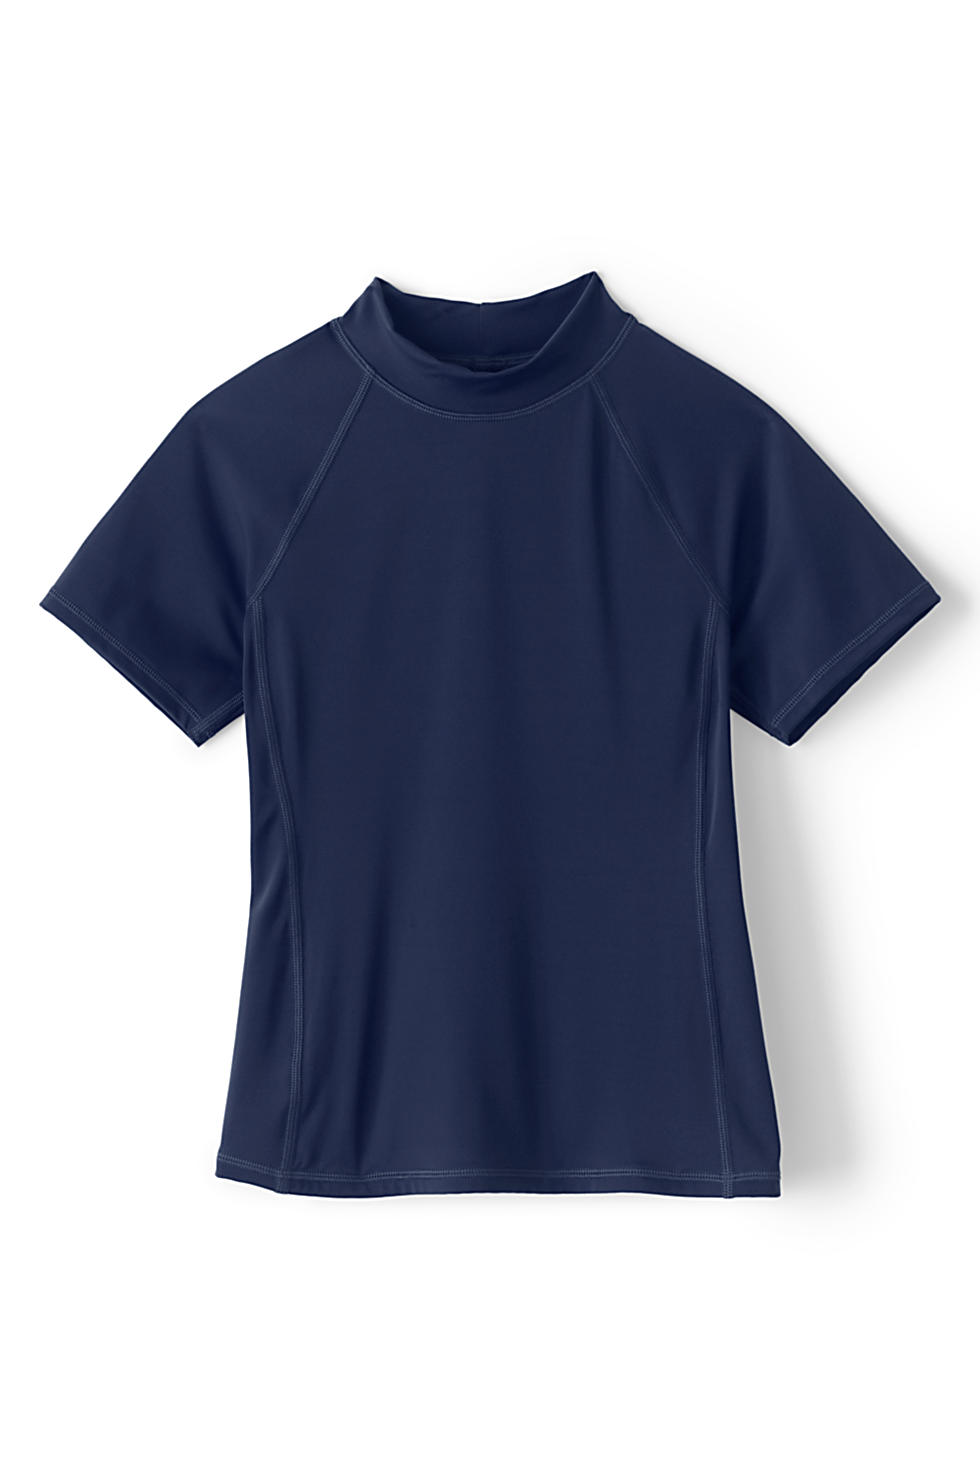 Lands' End : Girls Mock Neck UPF 50 Sun Protection Rashguard $1.20